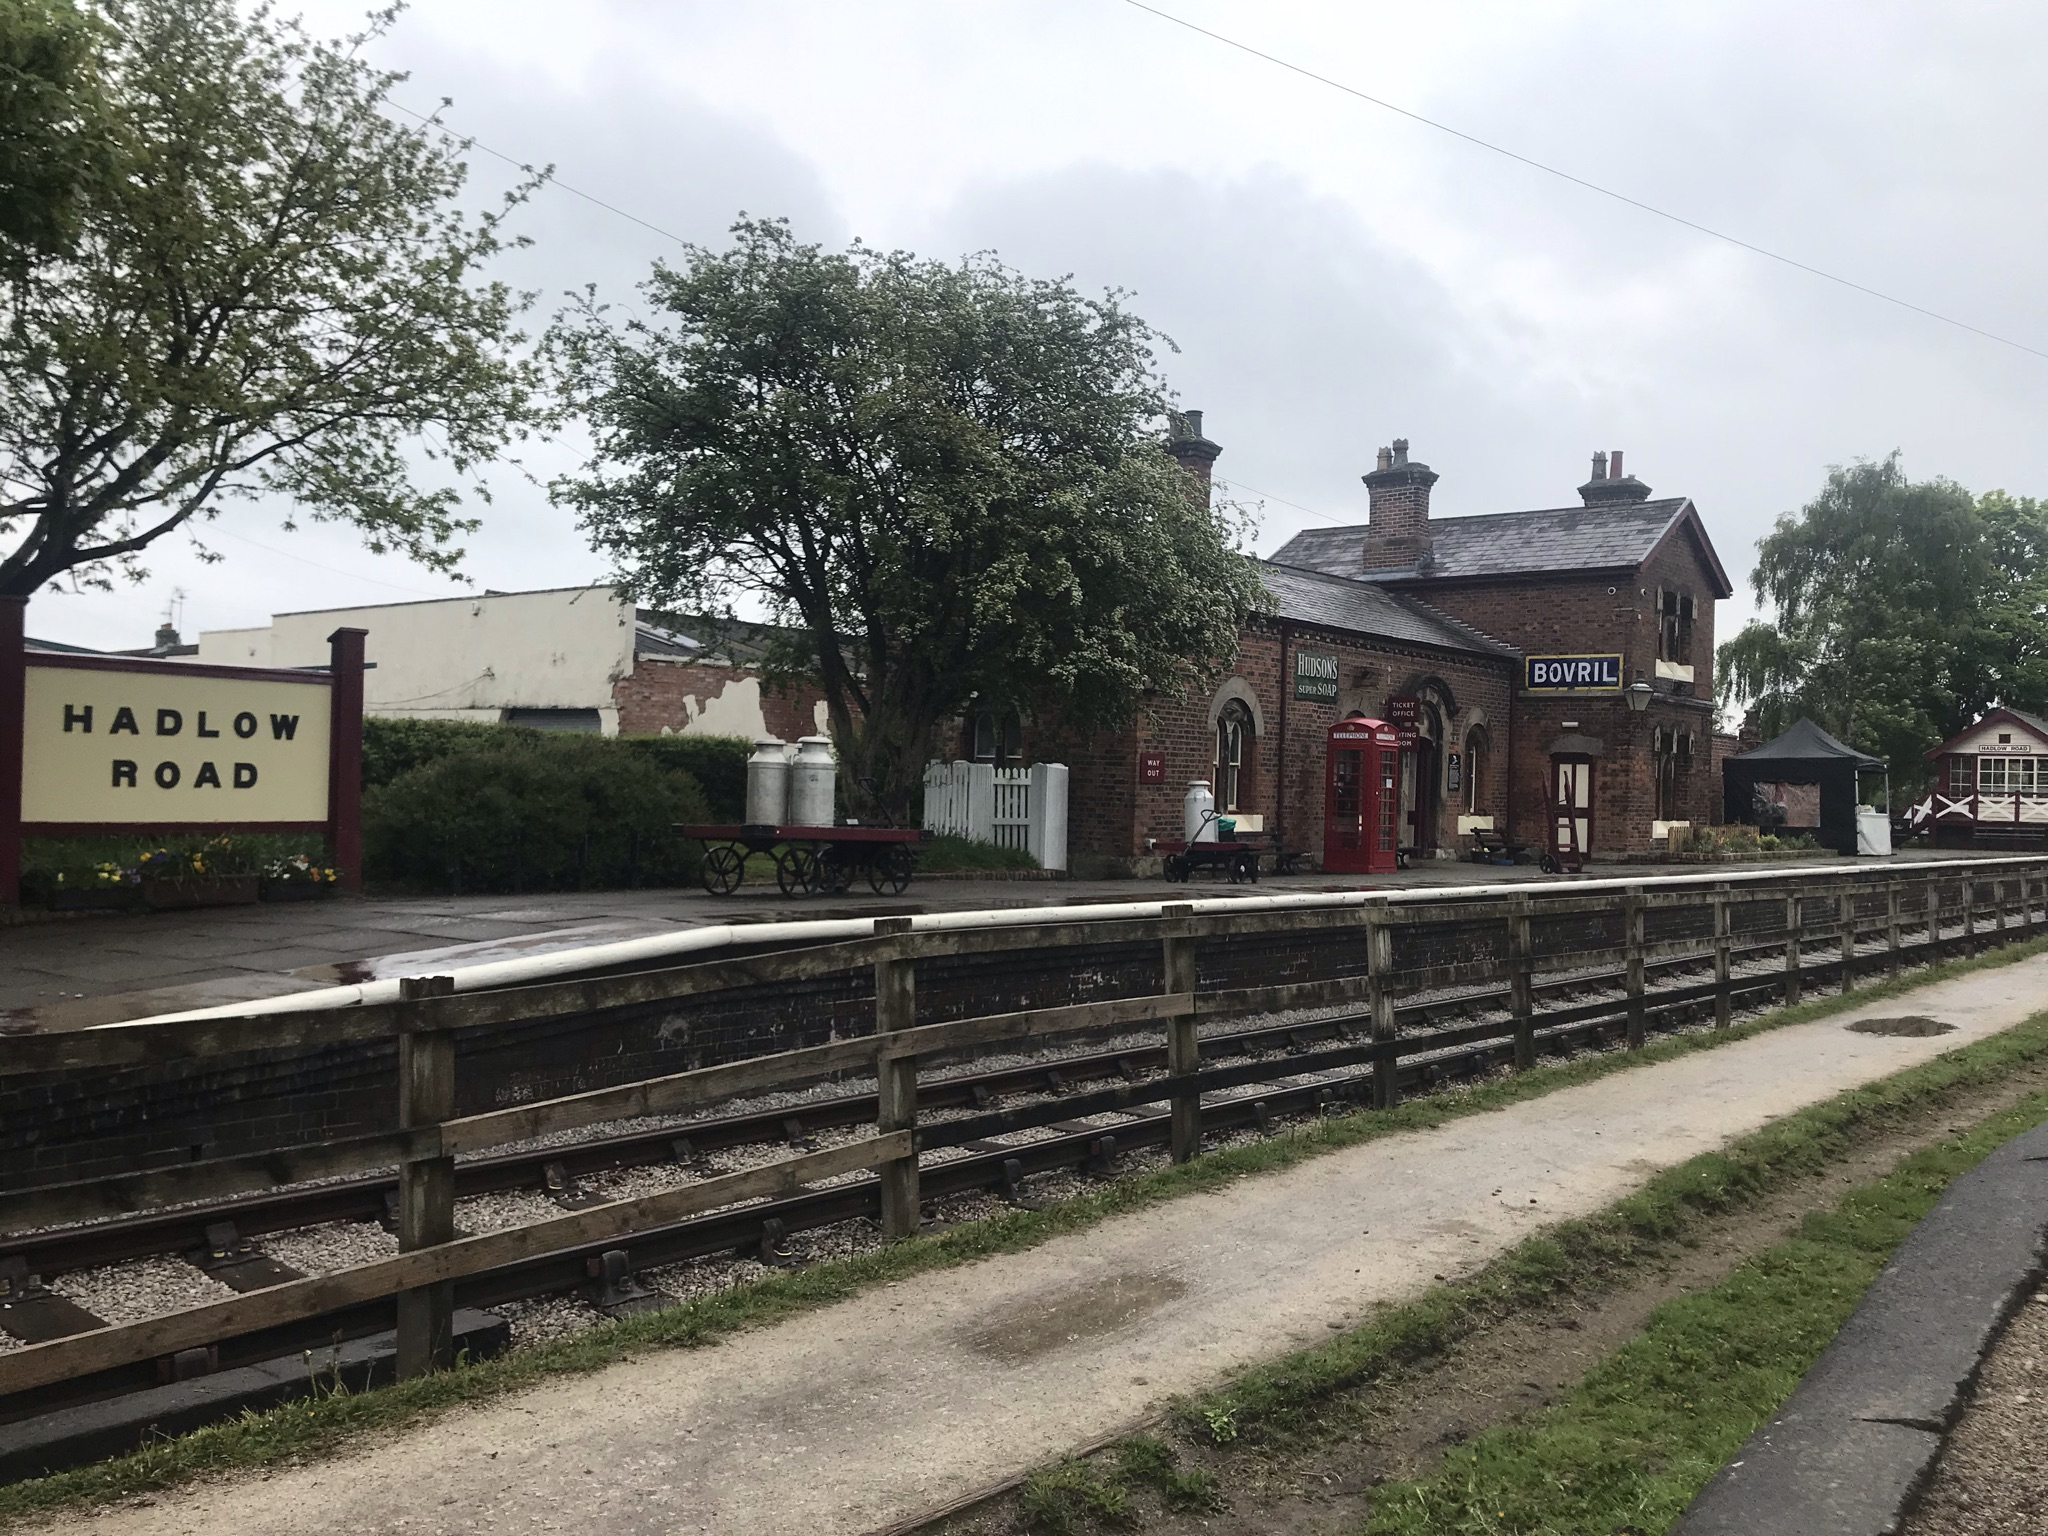 A disused station turned into a cafe